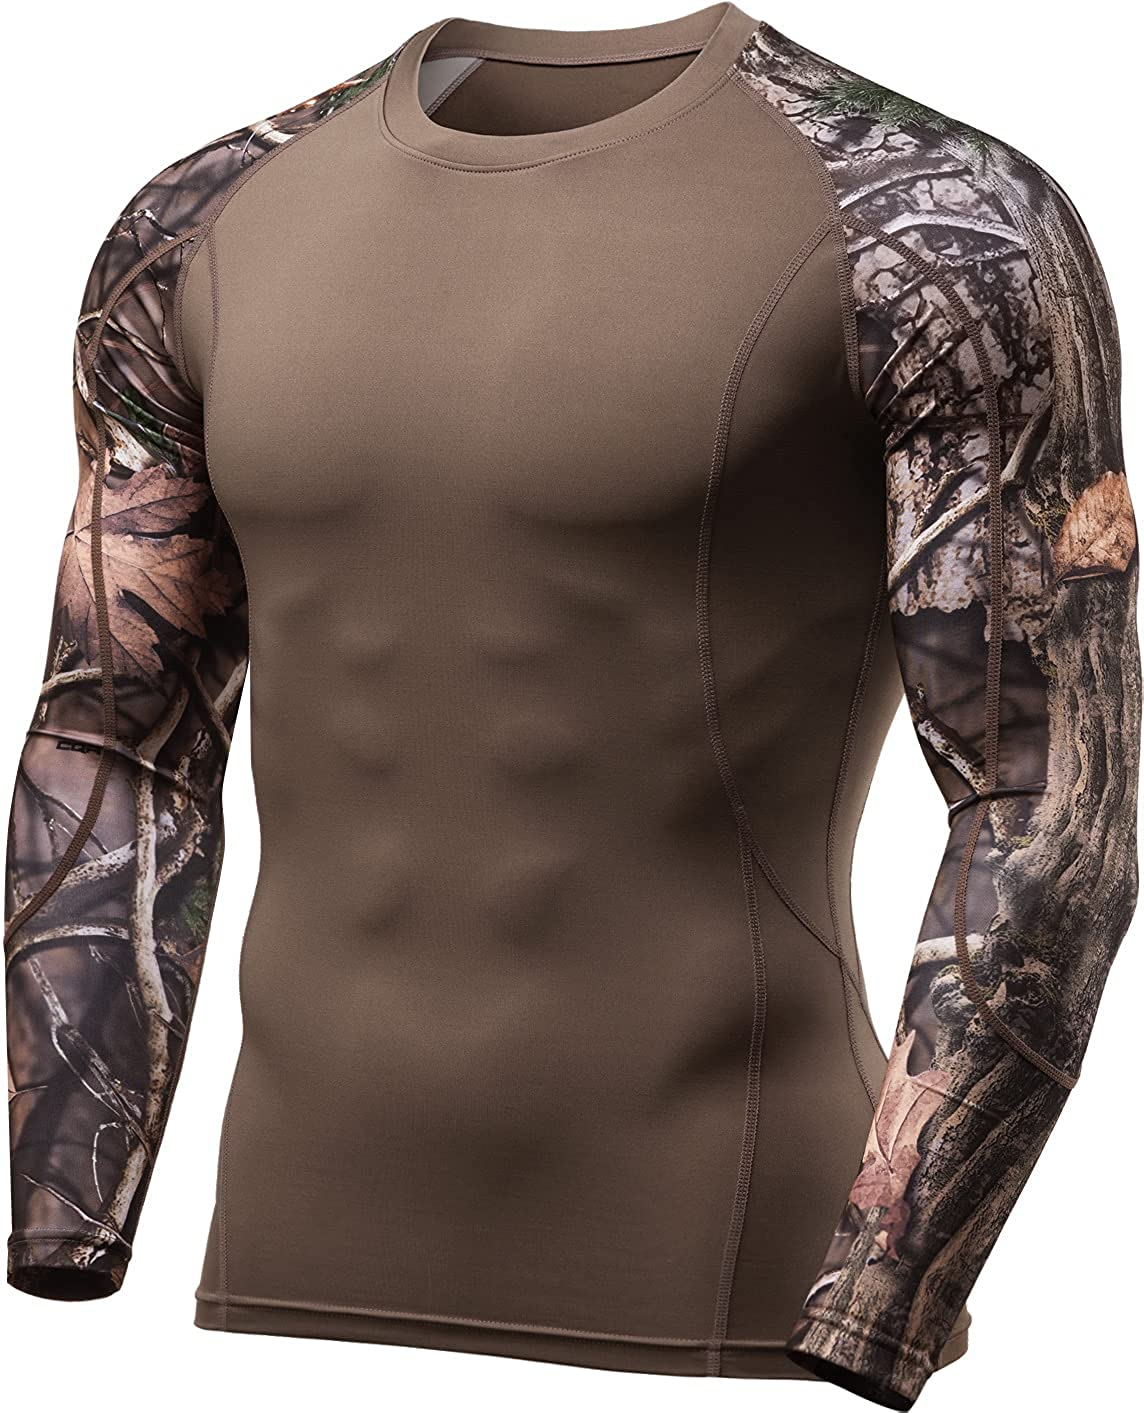 TSLA 1 2 or 3 Pack Men's Sleeve Long Many popular brands Shirts Max 40% OFF UPF Compression 50+